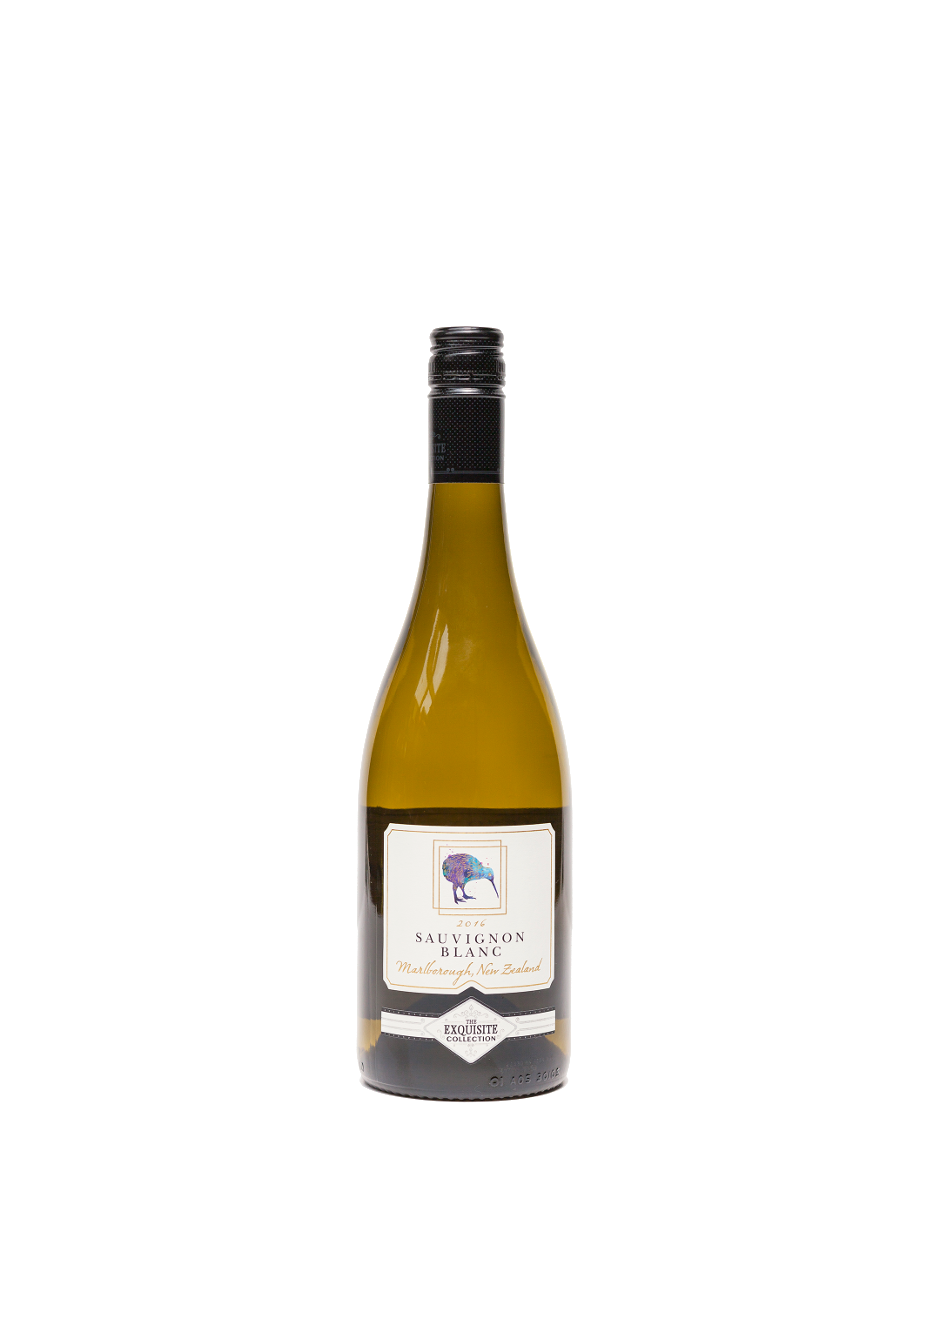 The Exquisite Collection Marlborough Sauvignon Blanc 2016